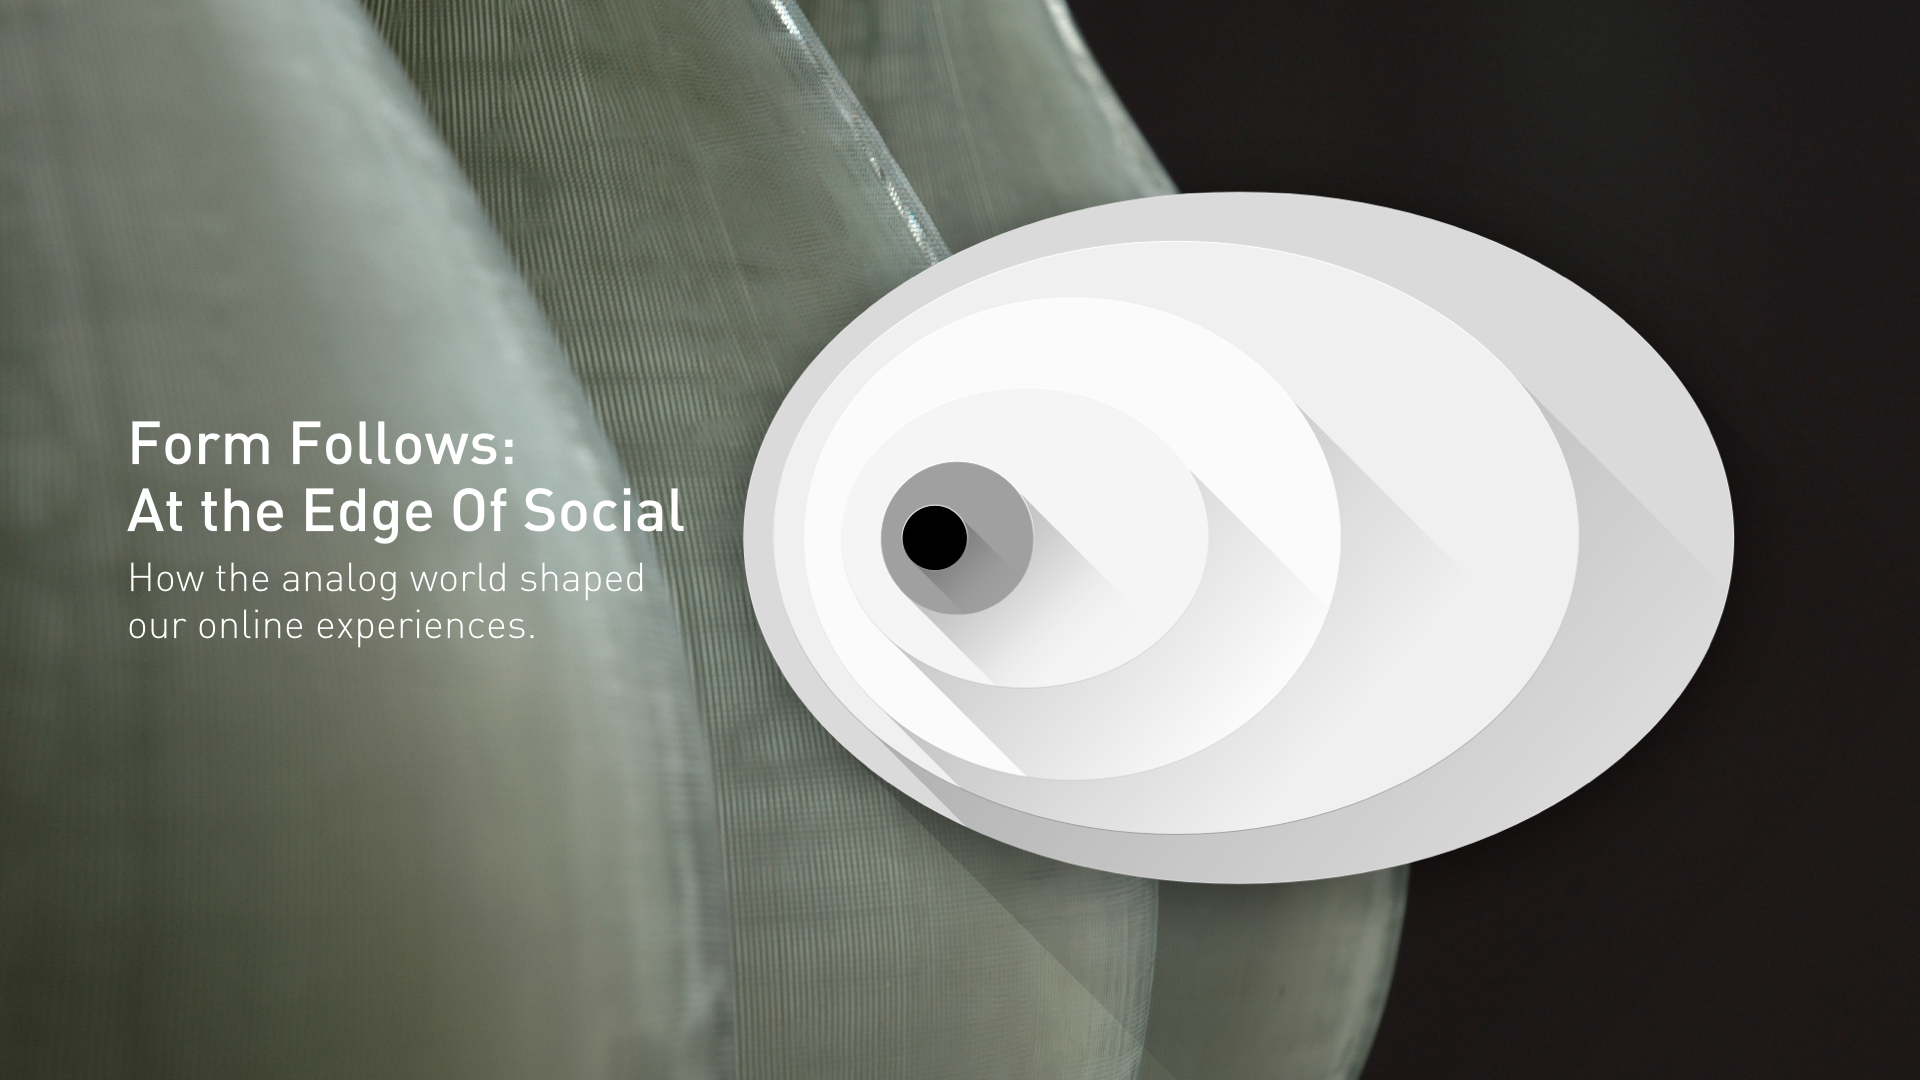 Form Follows: At the Edge of Social, by Sanjiv Sirpal